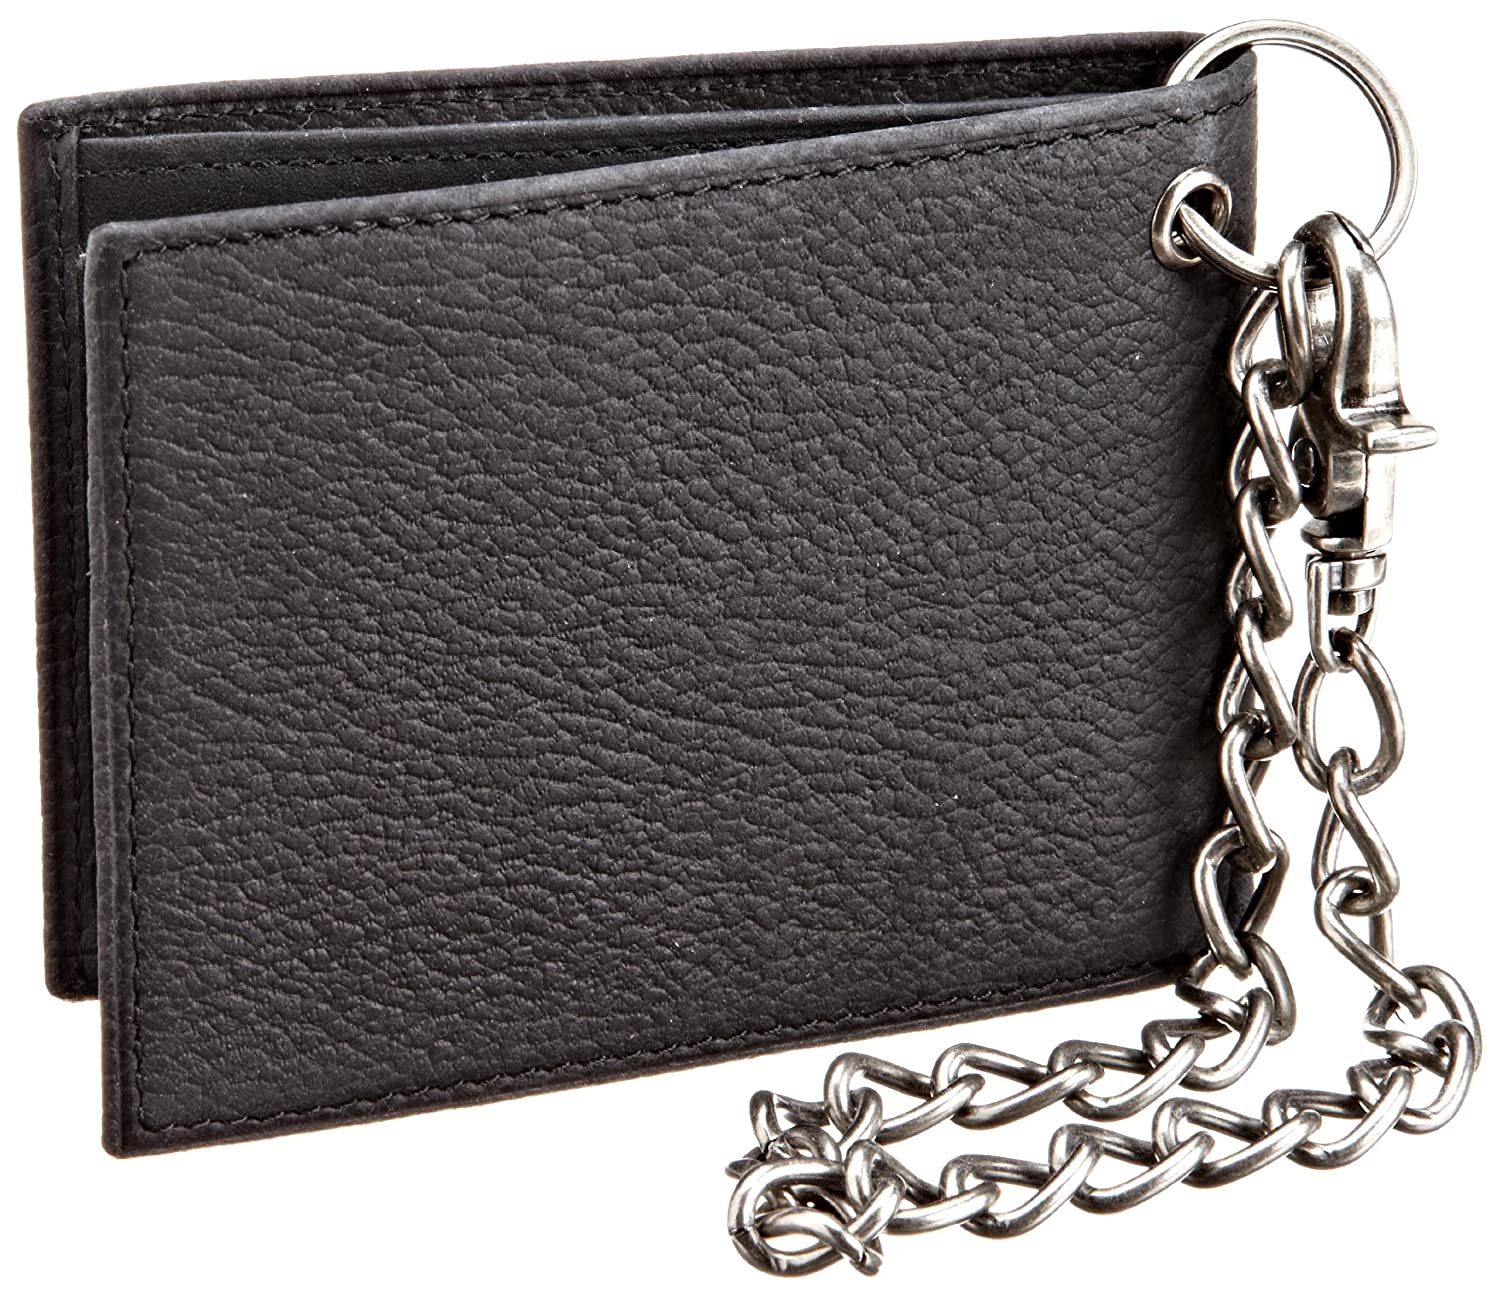 Dickies Leather Slimfold Wallet Chain Image 2